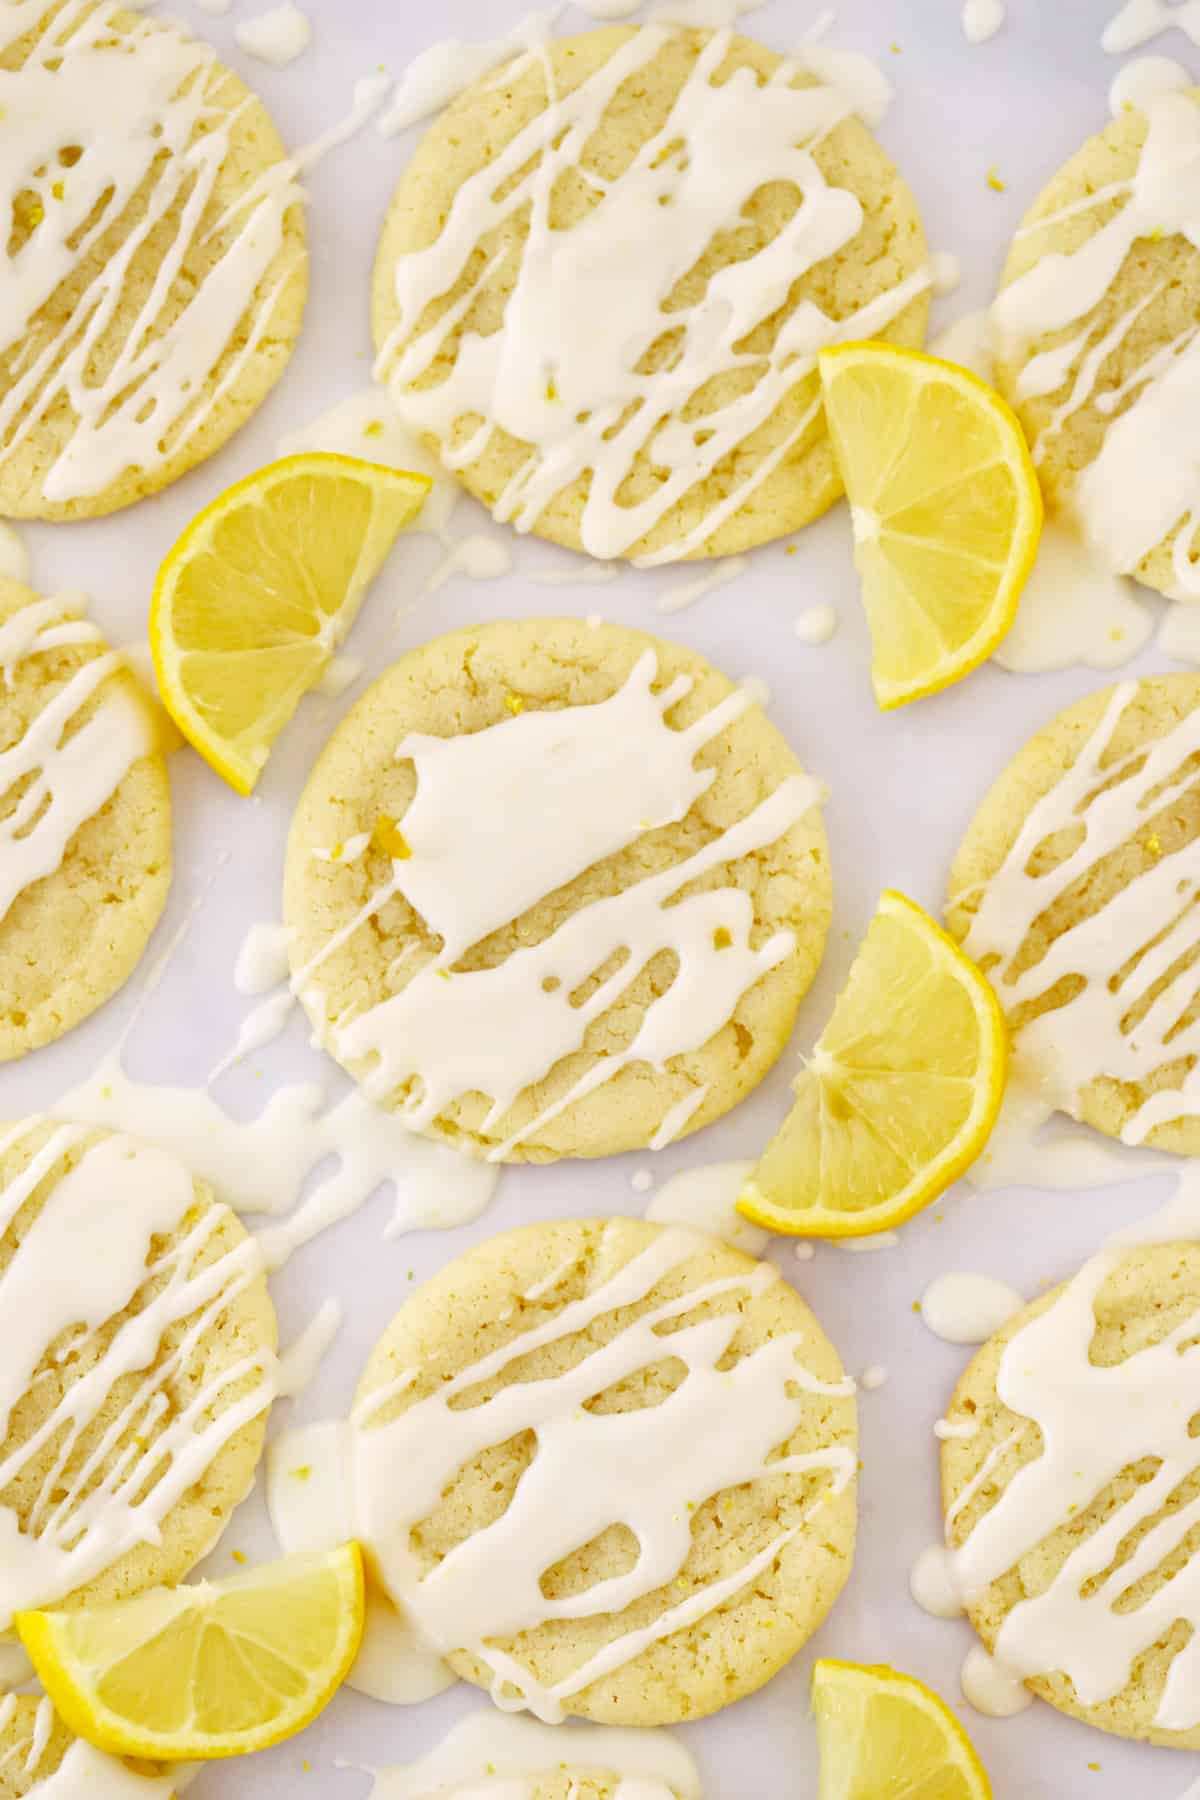 Baked cookies drizzled with glaze surrounded by fresh lemon wedges.